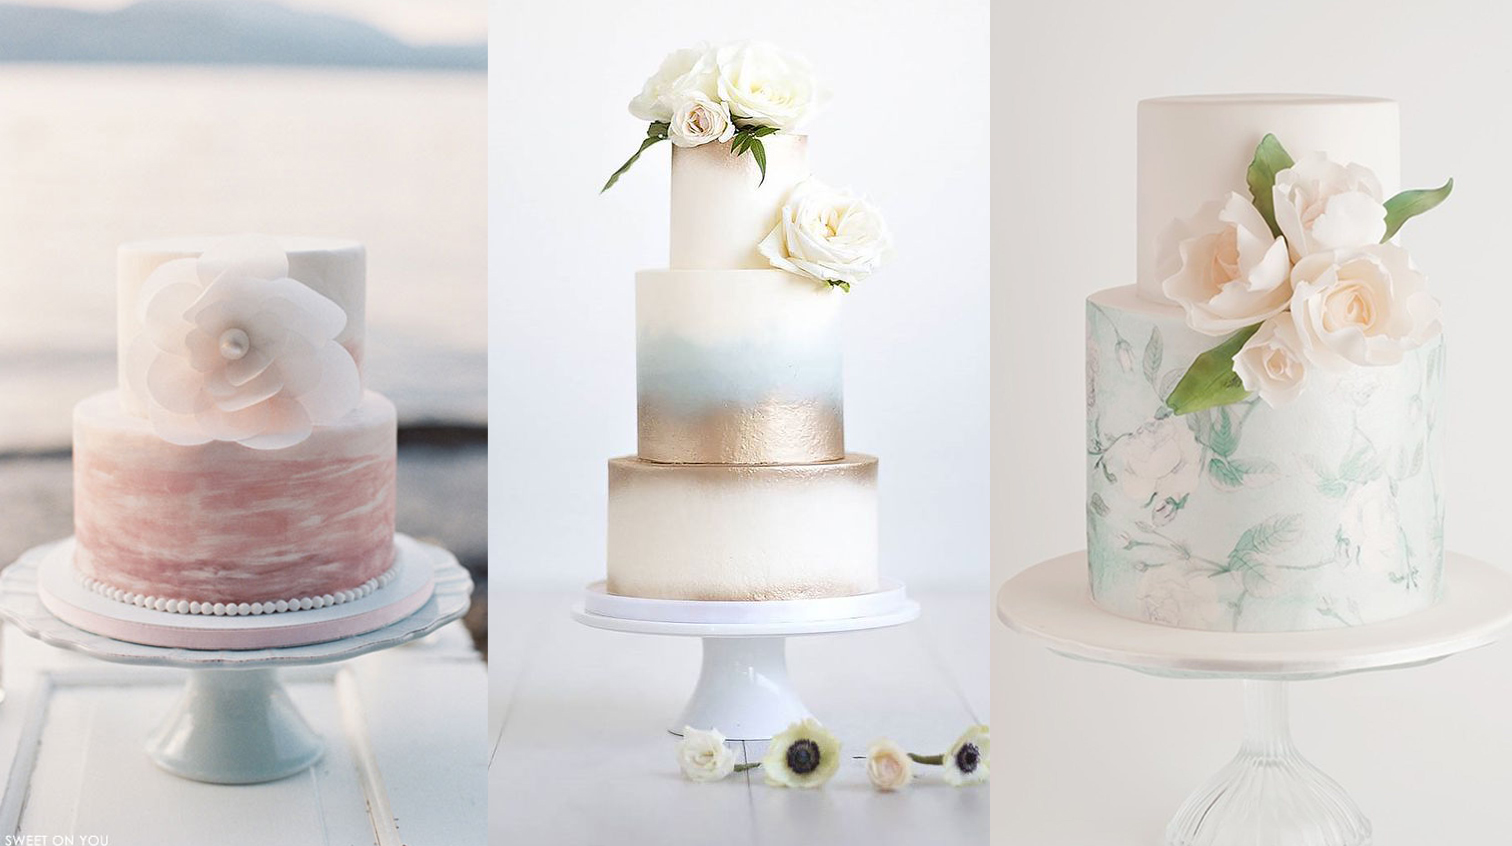 Watercolor Wedding Cakes Might Be The Next Big Wedding Trend